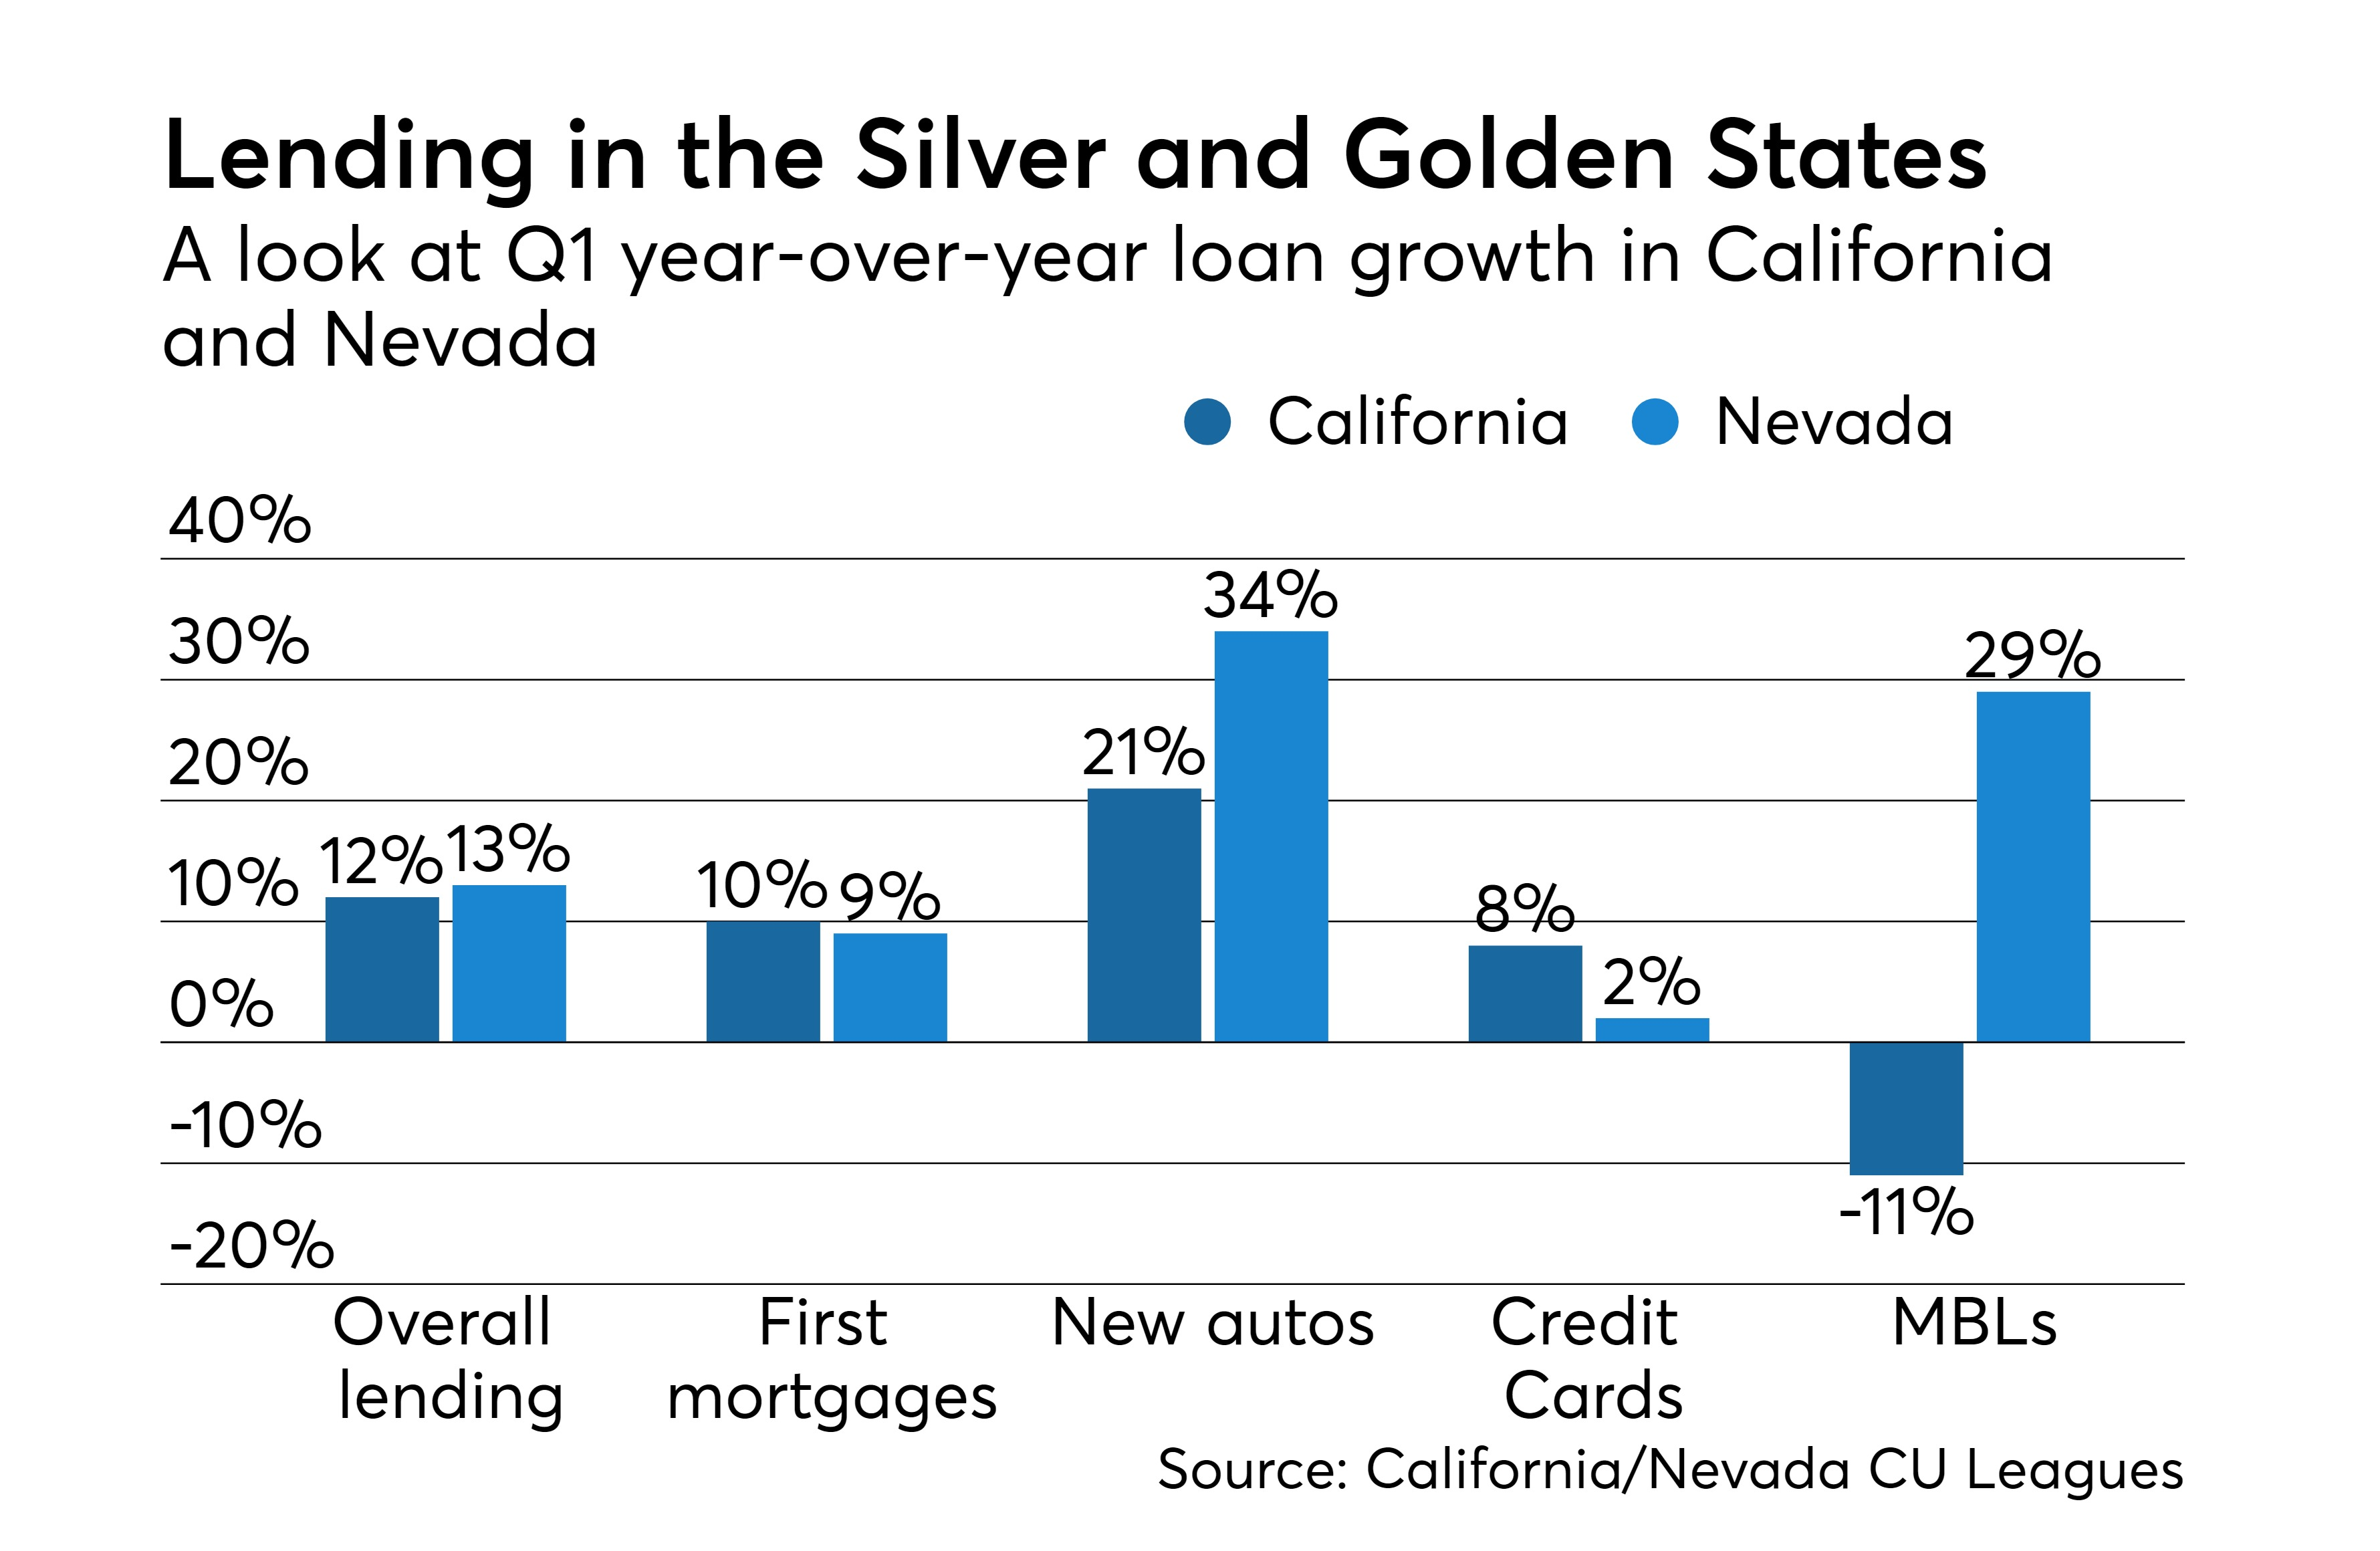 https://assets.sourcemedia.com/ab/28/cdaeb6584739b7d2219d1699132f/california-and-nevada-loan-growth-q1-2018-cuj-071818.jpeg